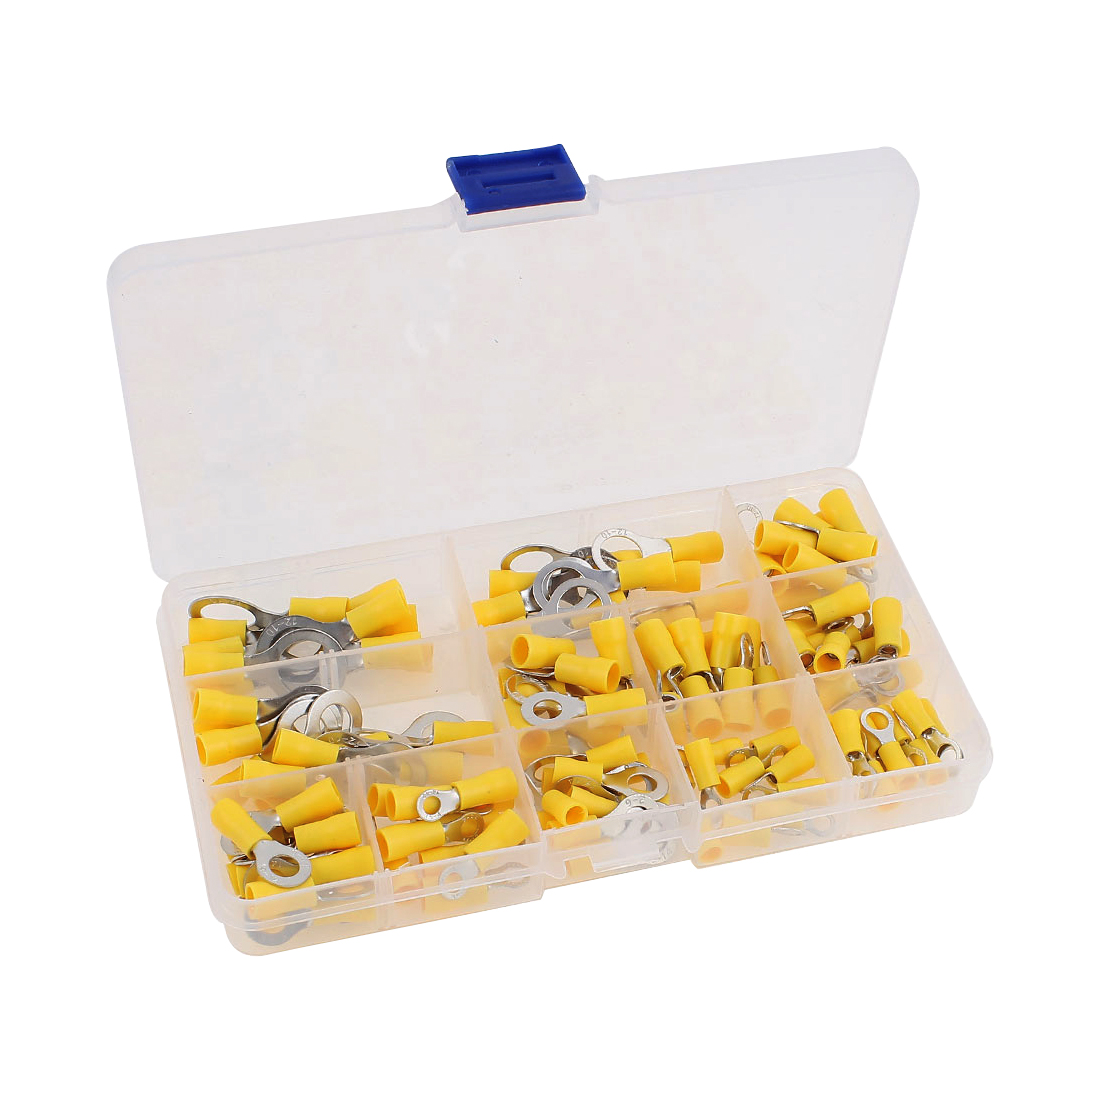 120 Pcs Insulated Ring Crimp Terminal Assorted Set Electrical Wiring Connector